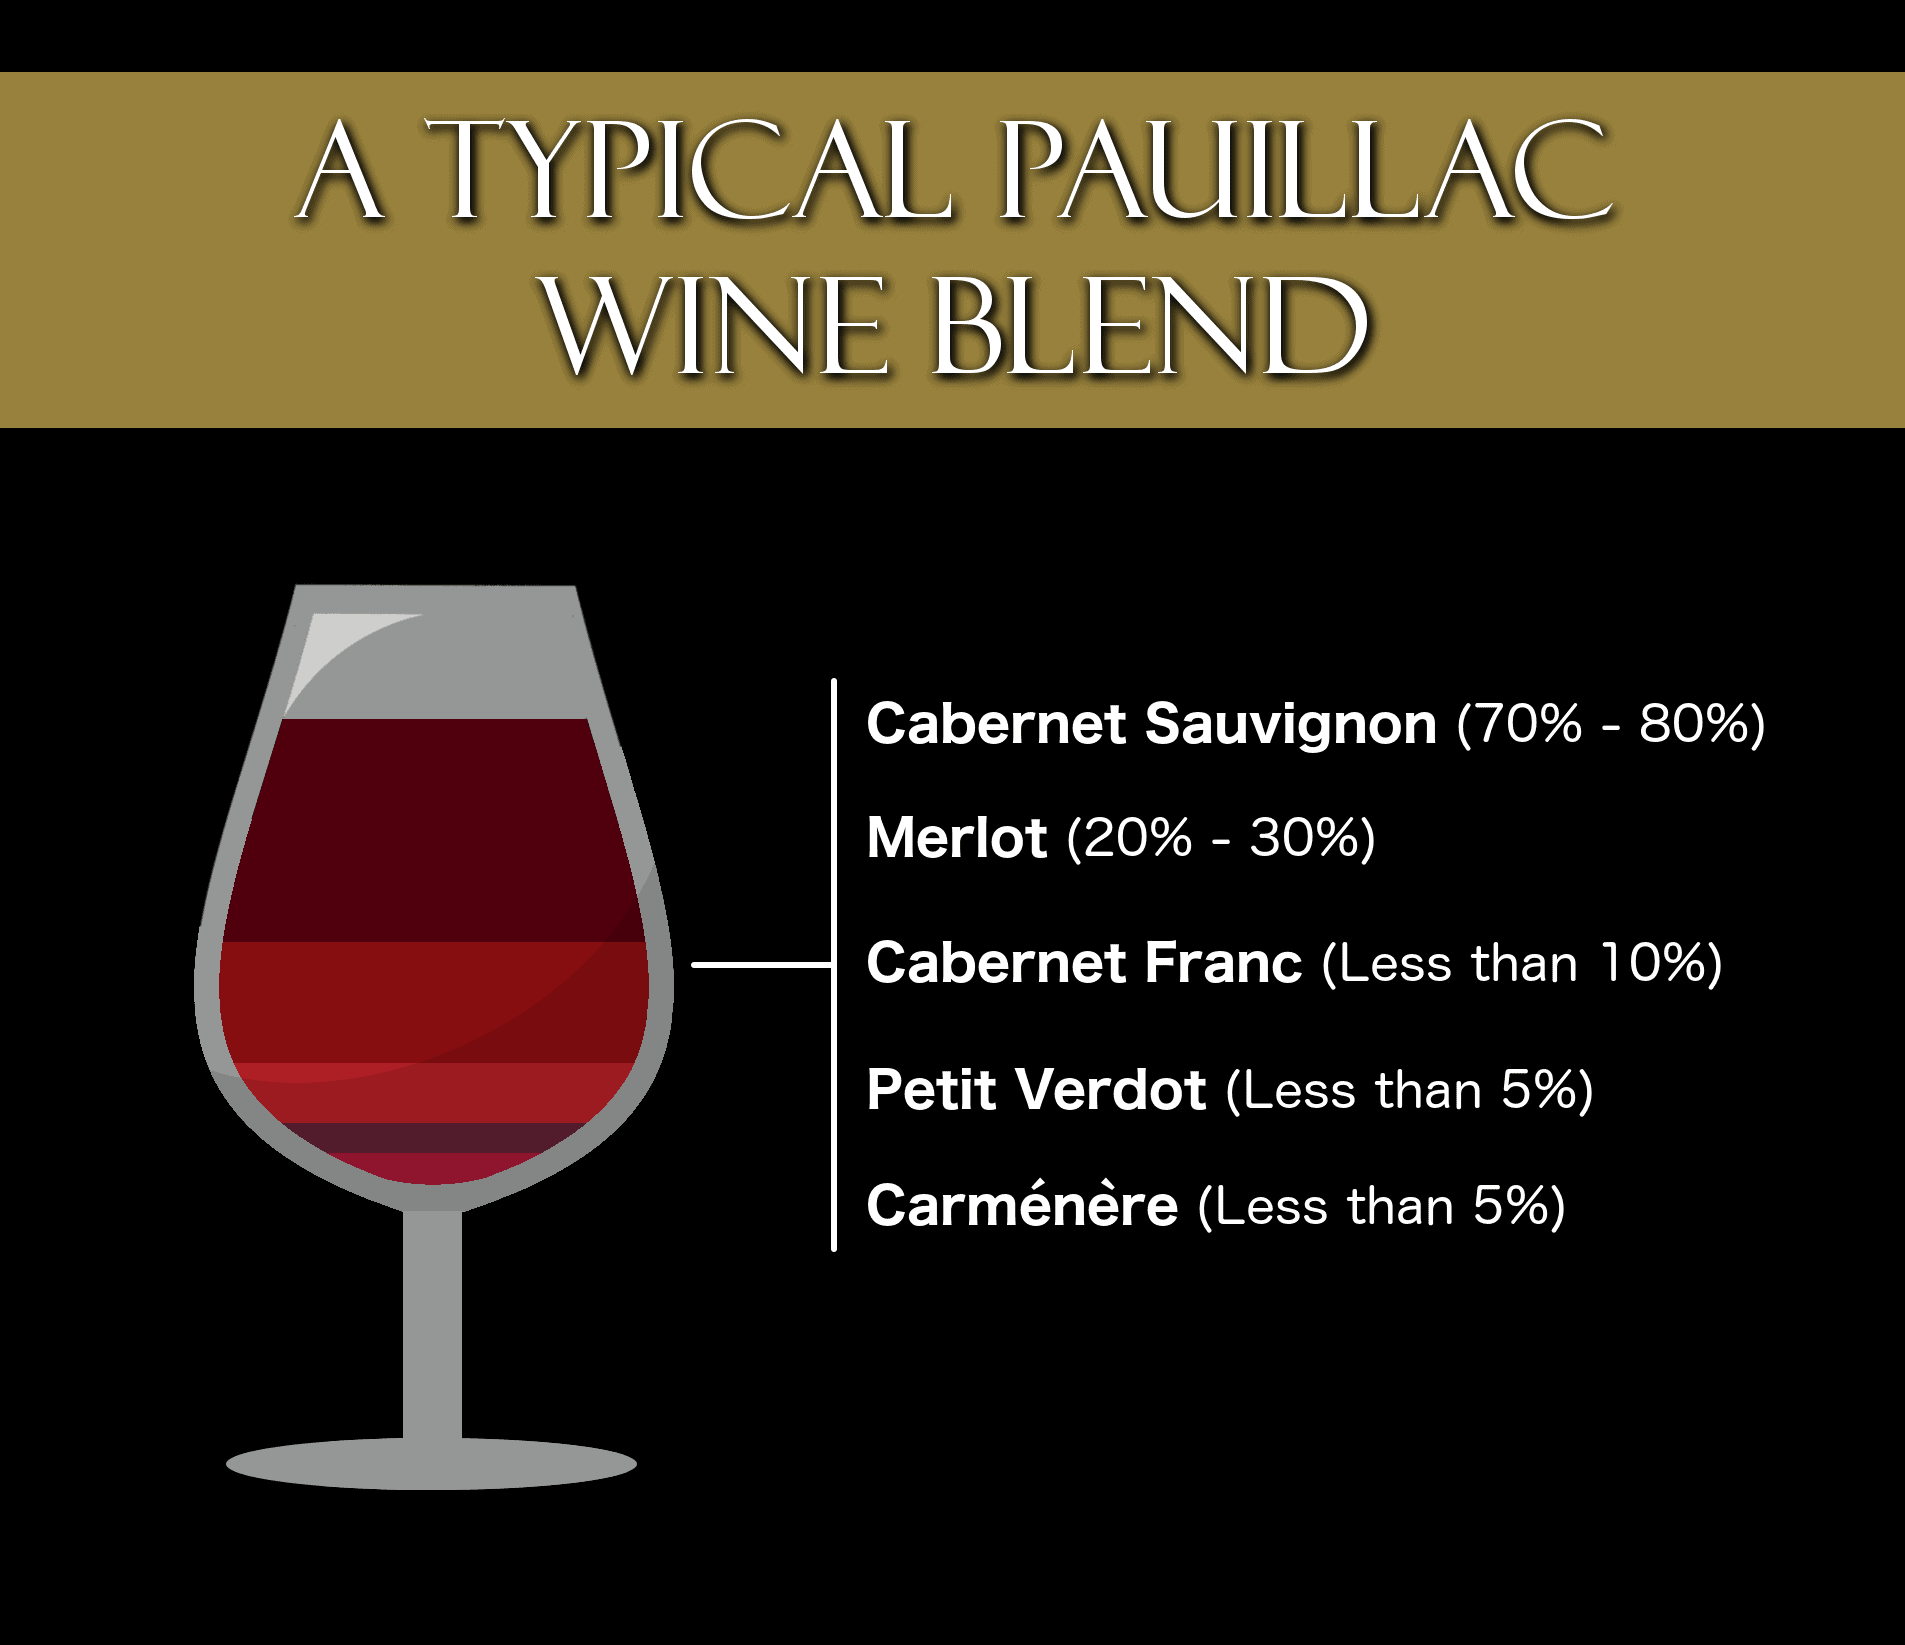 A typical Pauillac wine blend